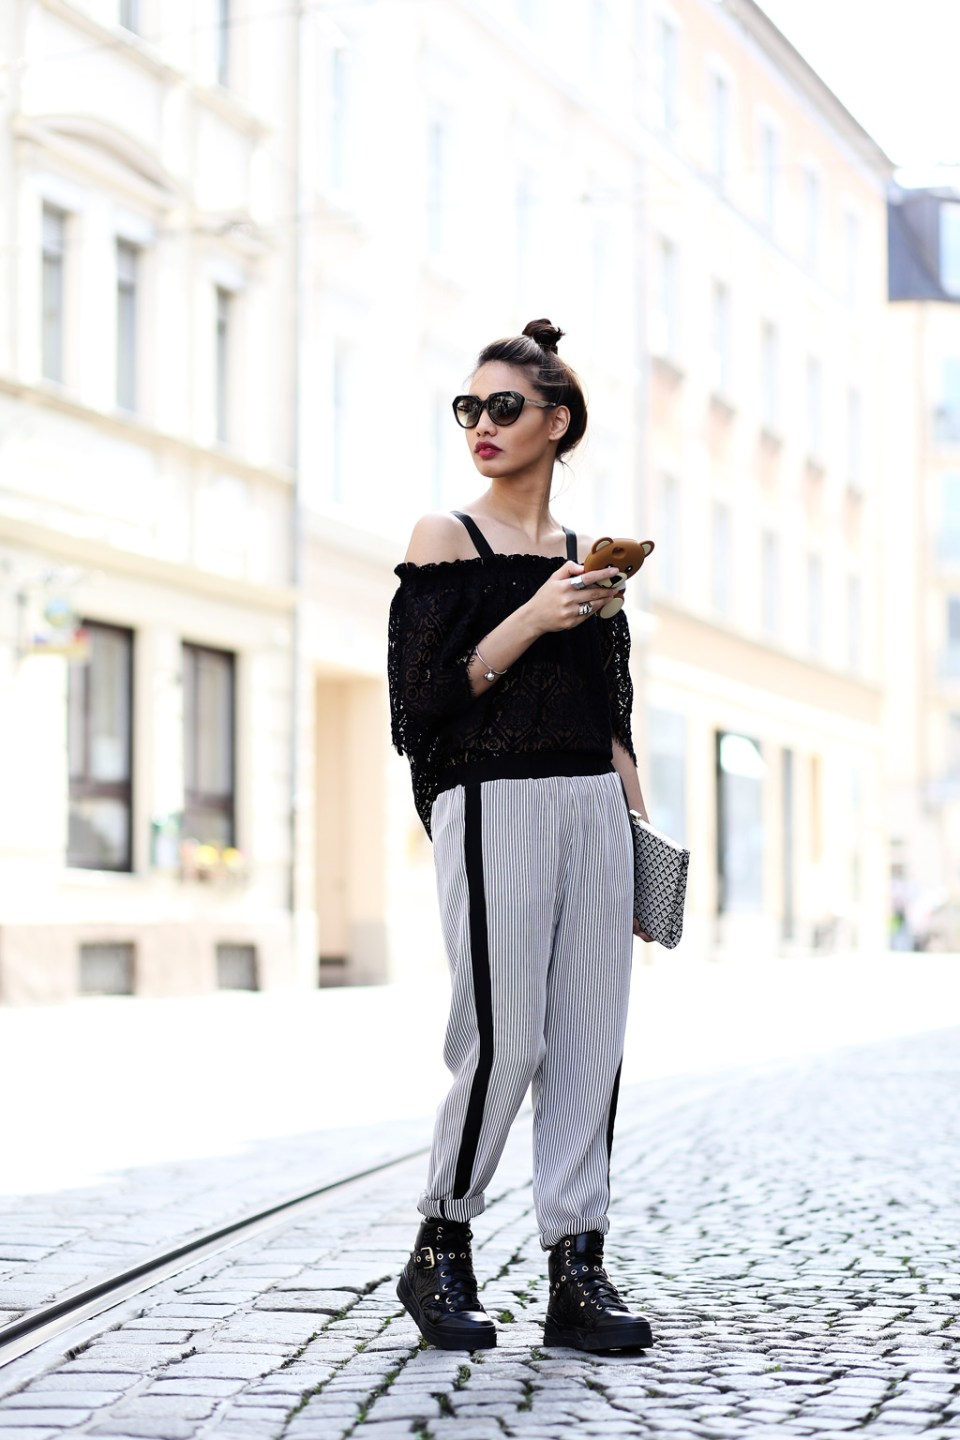 thefashionanarchy_anniep._outfit_style_look_spitze_lace_munichblogger_blogger_fashionblogger_munich_muenchen_fashionblogger_ash_sneaker_5